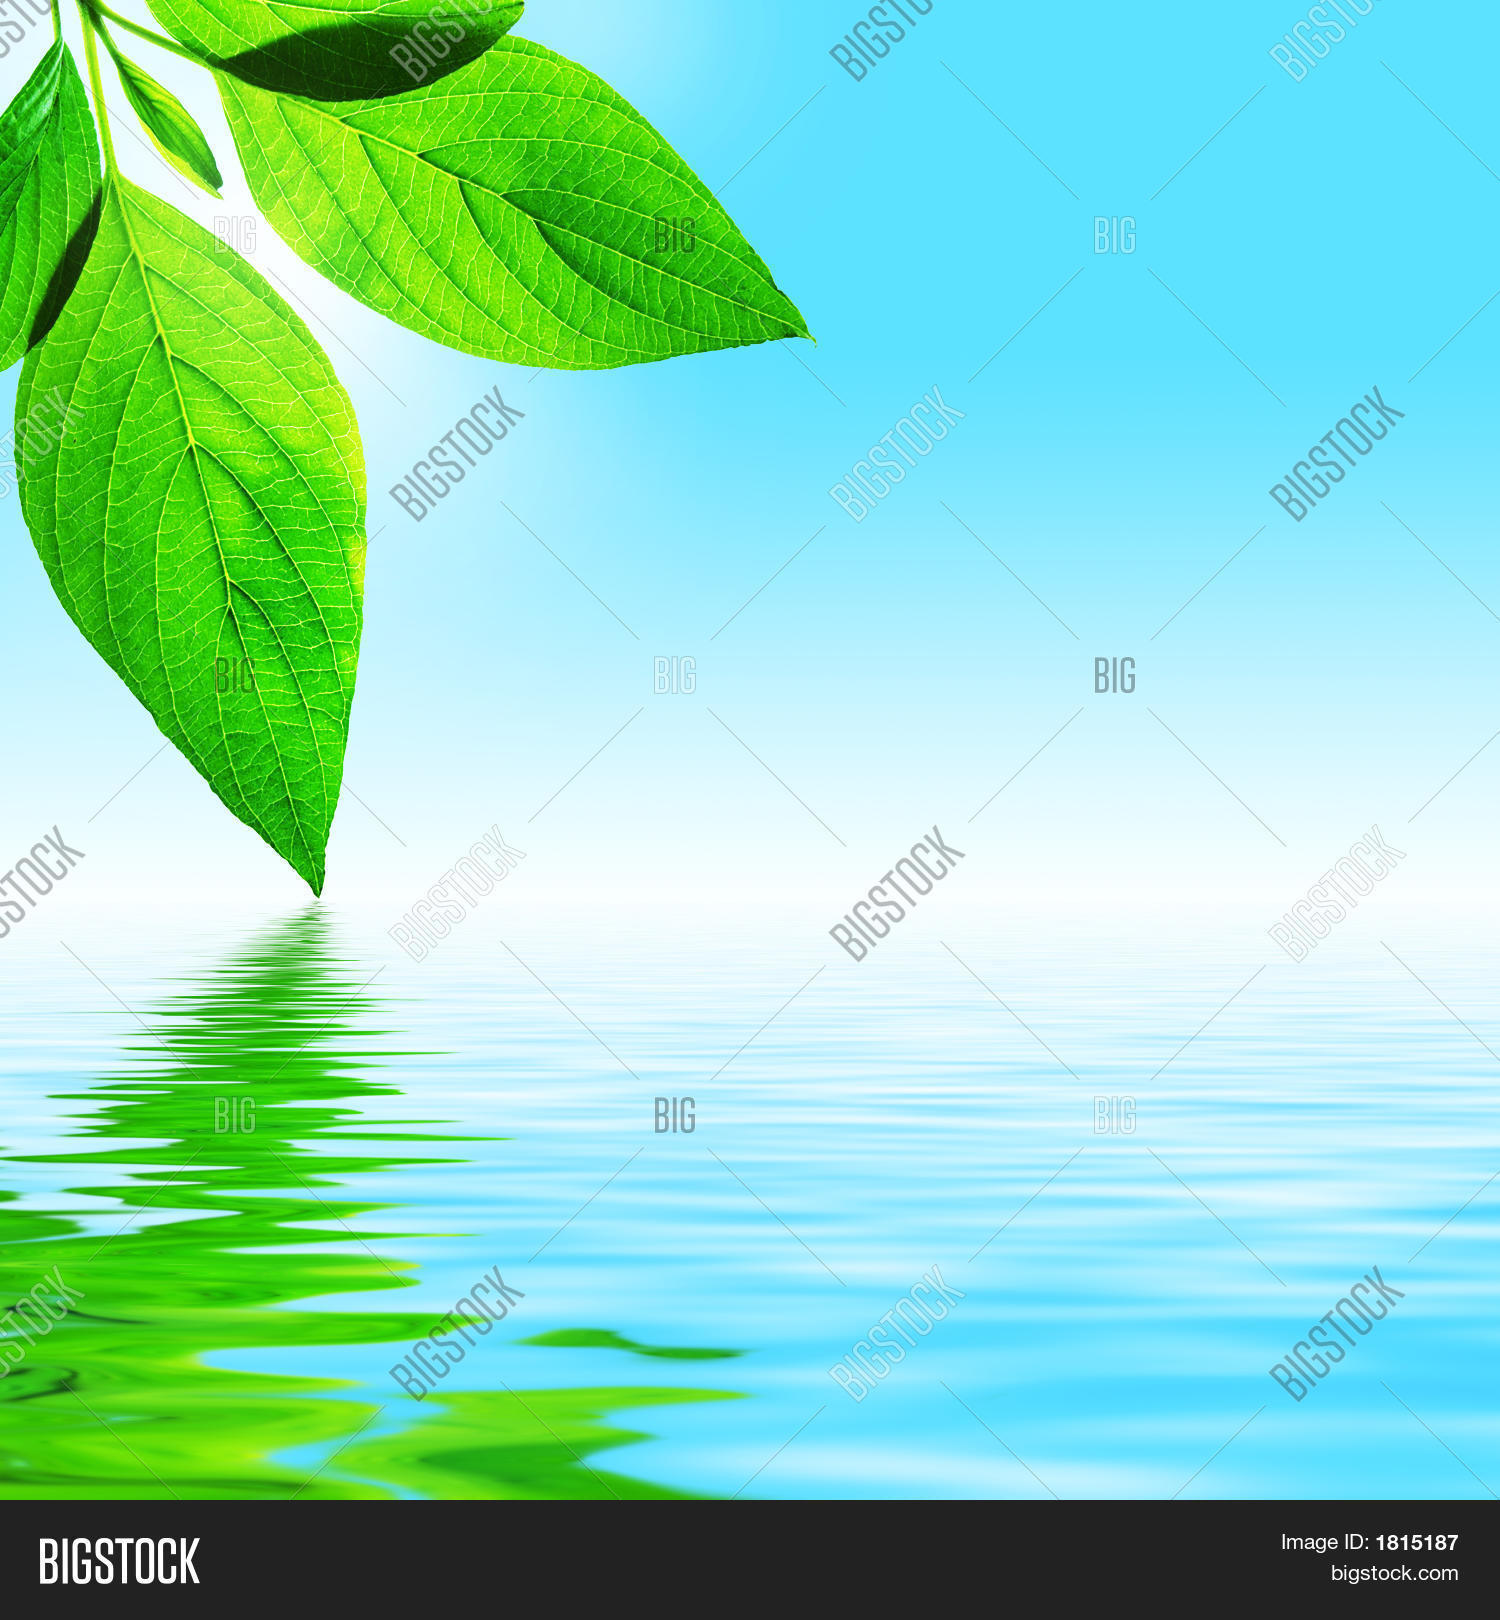 Fresh Leaf, Blue Sky Image & Photo (Free Trial) | Bigstock